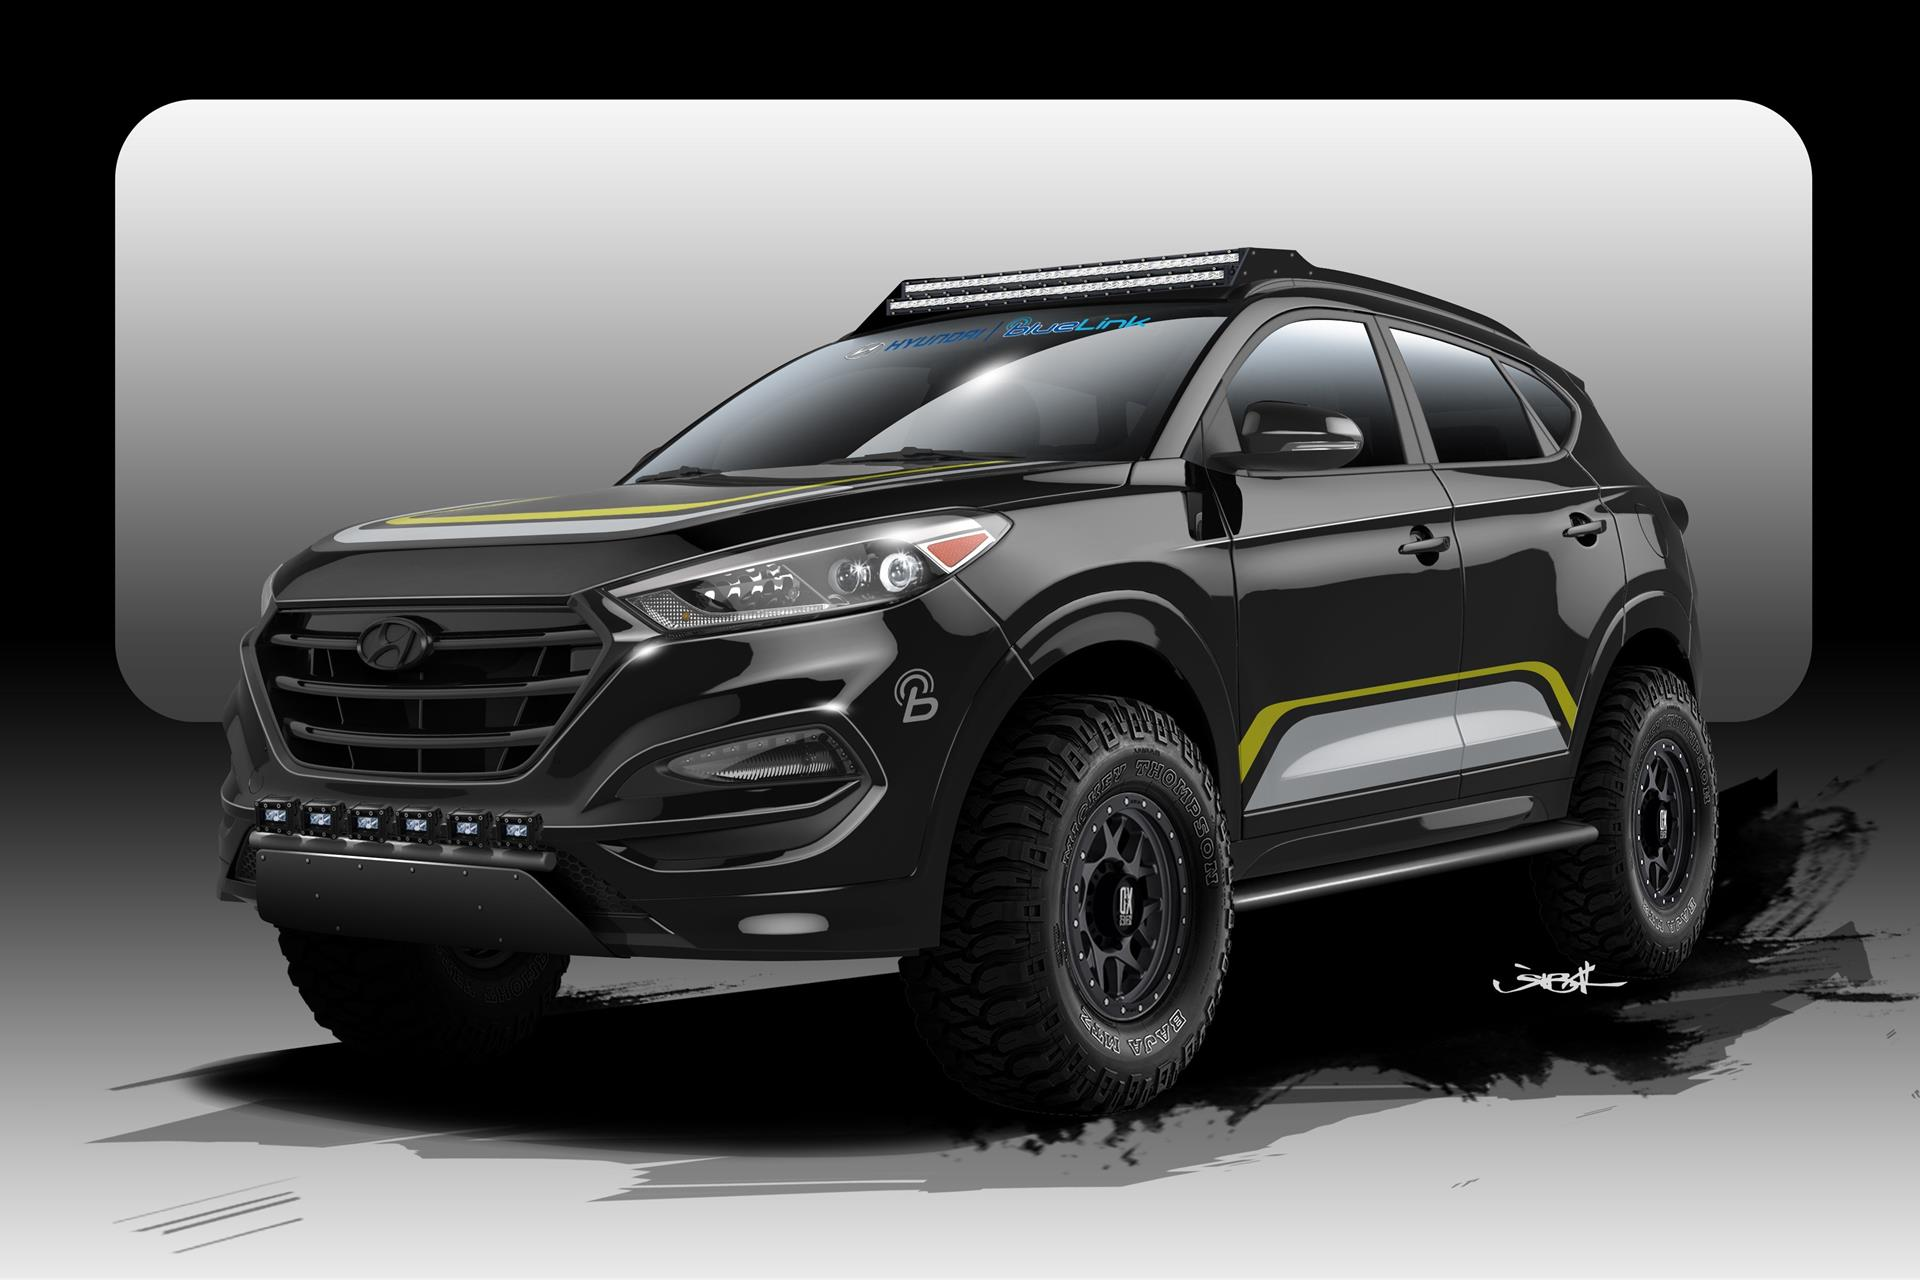 Hyundai Tucson pictures and wallpaper